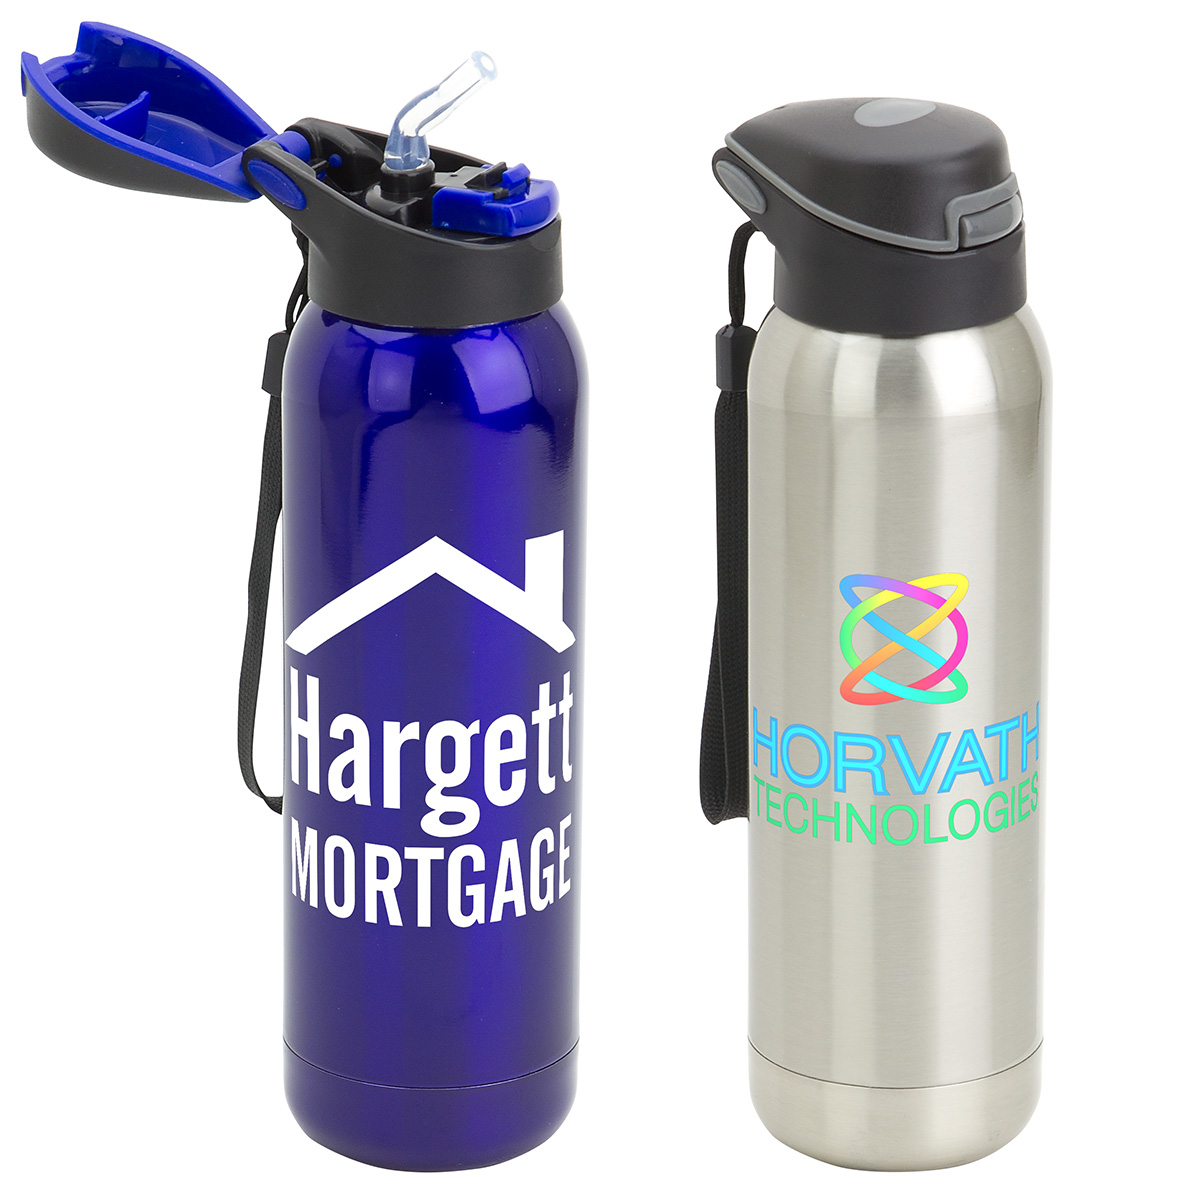 Stratford 17oz Pop-Top Vacuum Insulated Stainless Steel Bottle, DBT-ST17 - 1 Colour Imprint